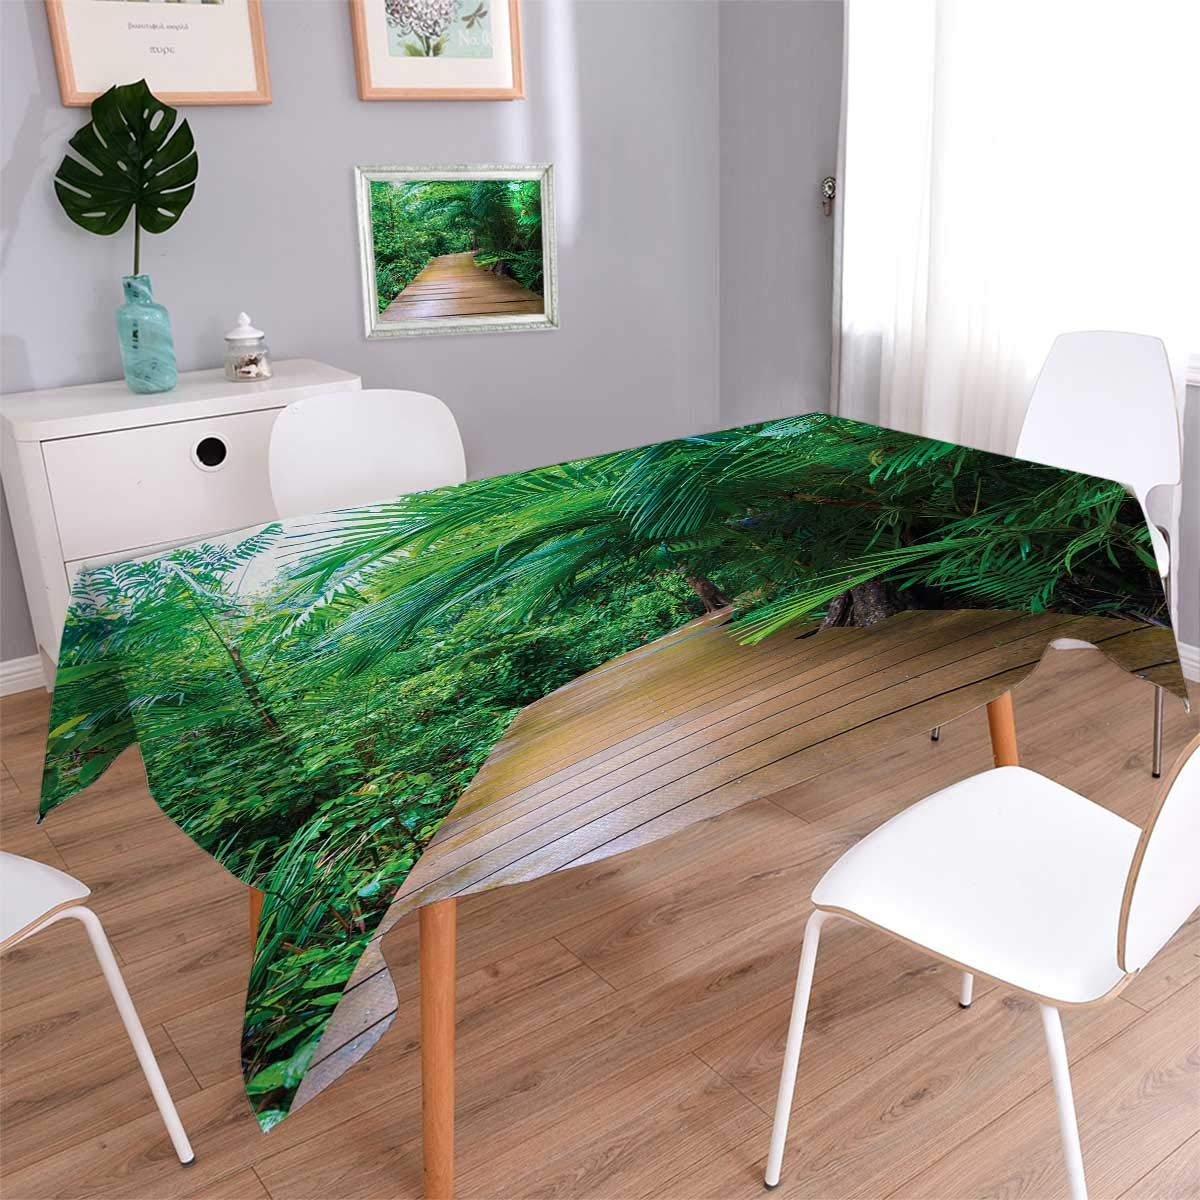 Anmaseven Jungle Oblong Patterned Tablecloth Deck Timber Jetty Exotic Getaway Wilderness Footpath Tropic Plants Rainforest Dust-proof Oblong Tablecloth Light Brown Green Size: W50 x L80